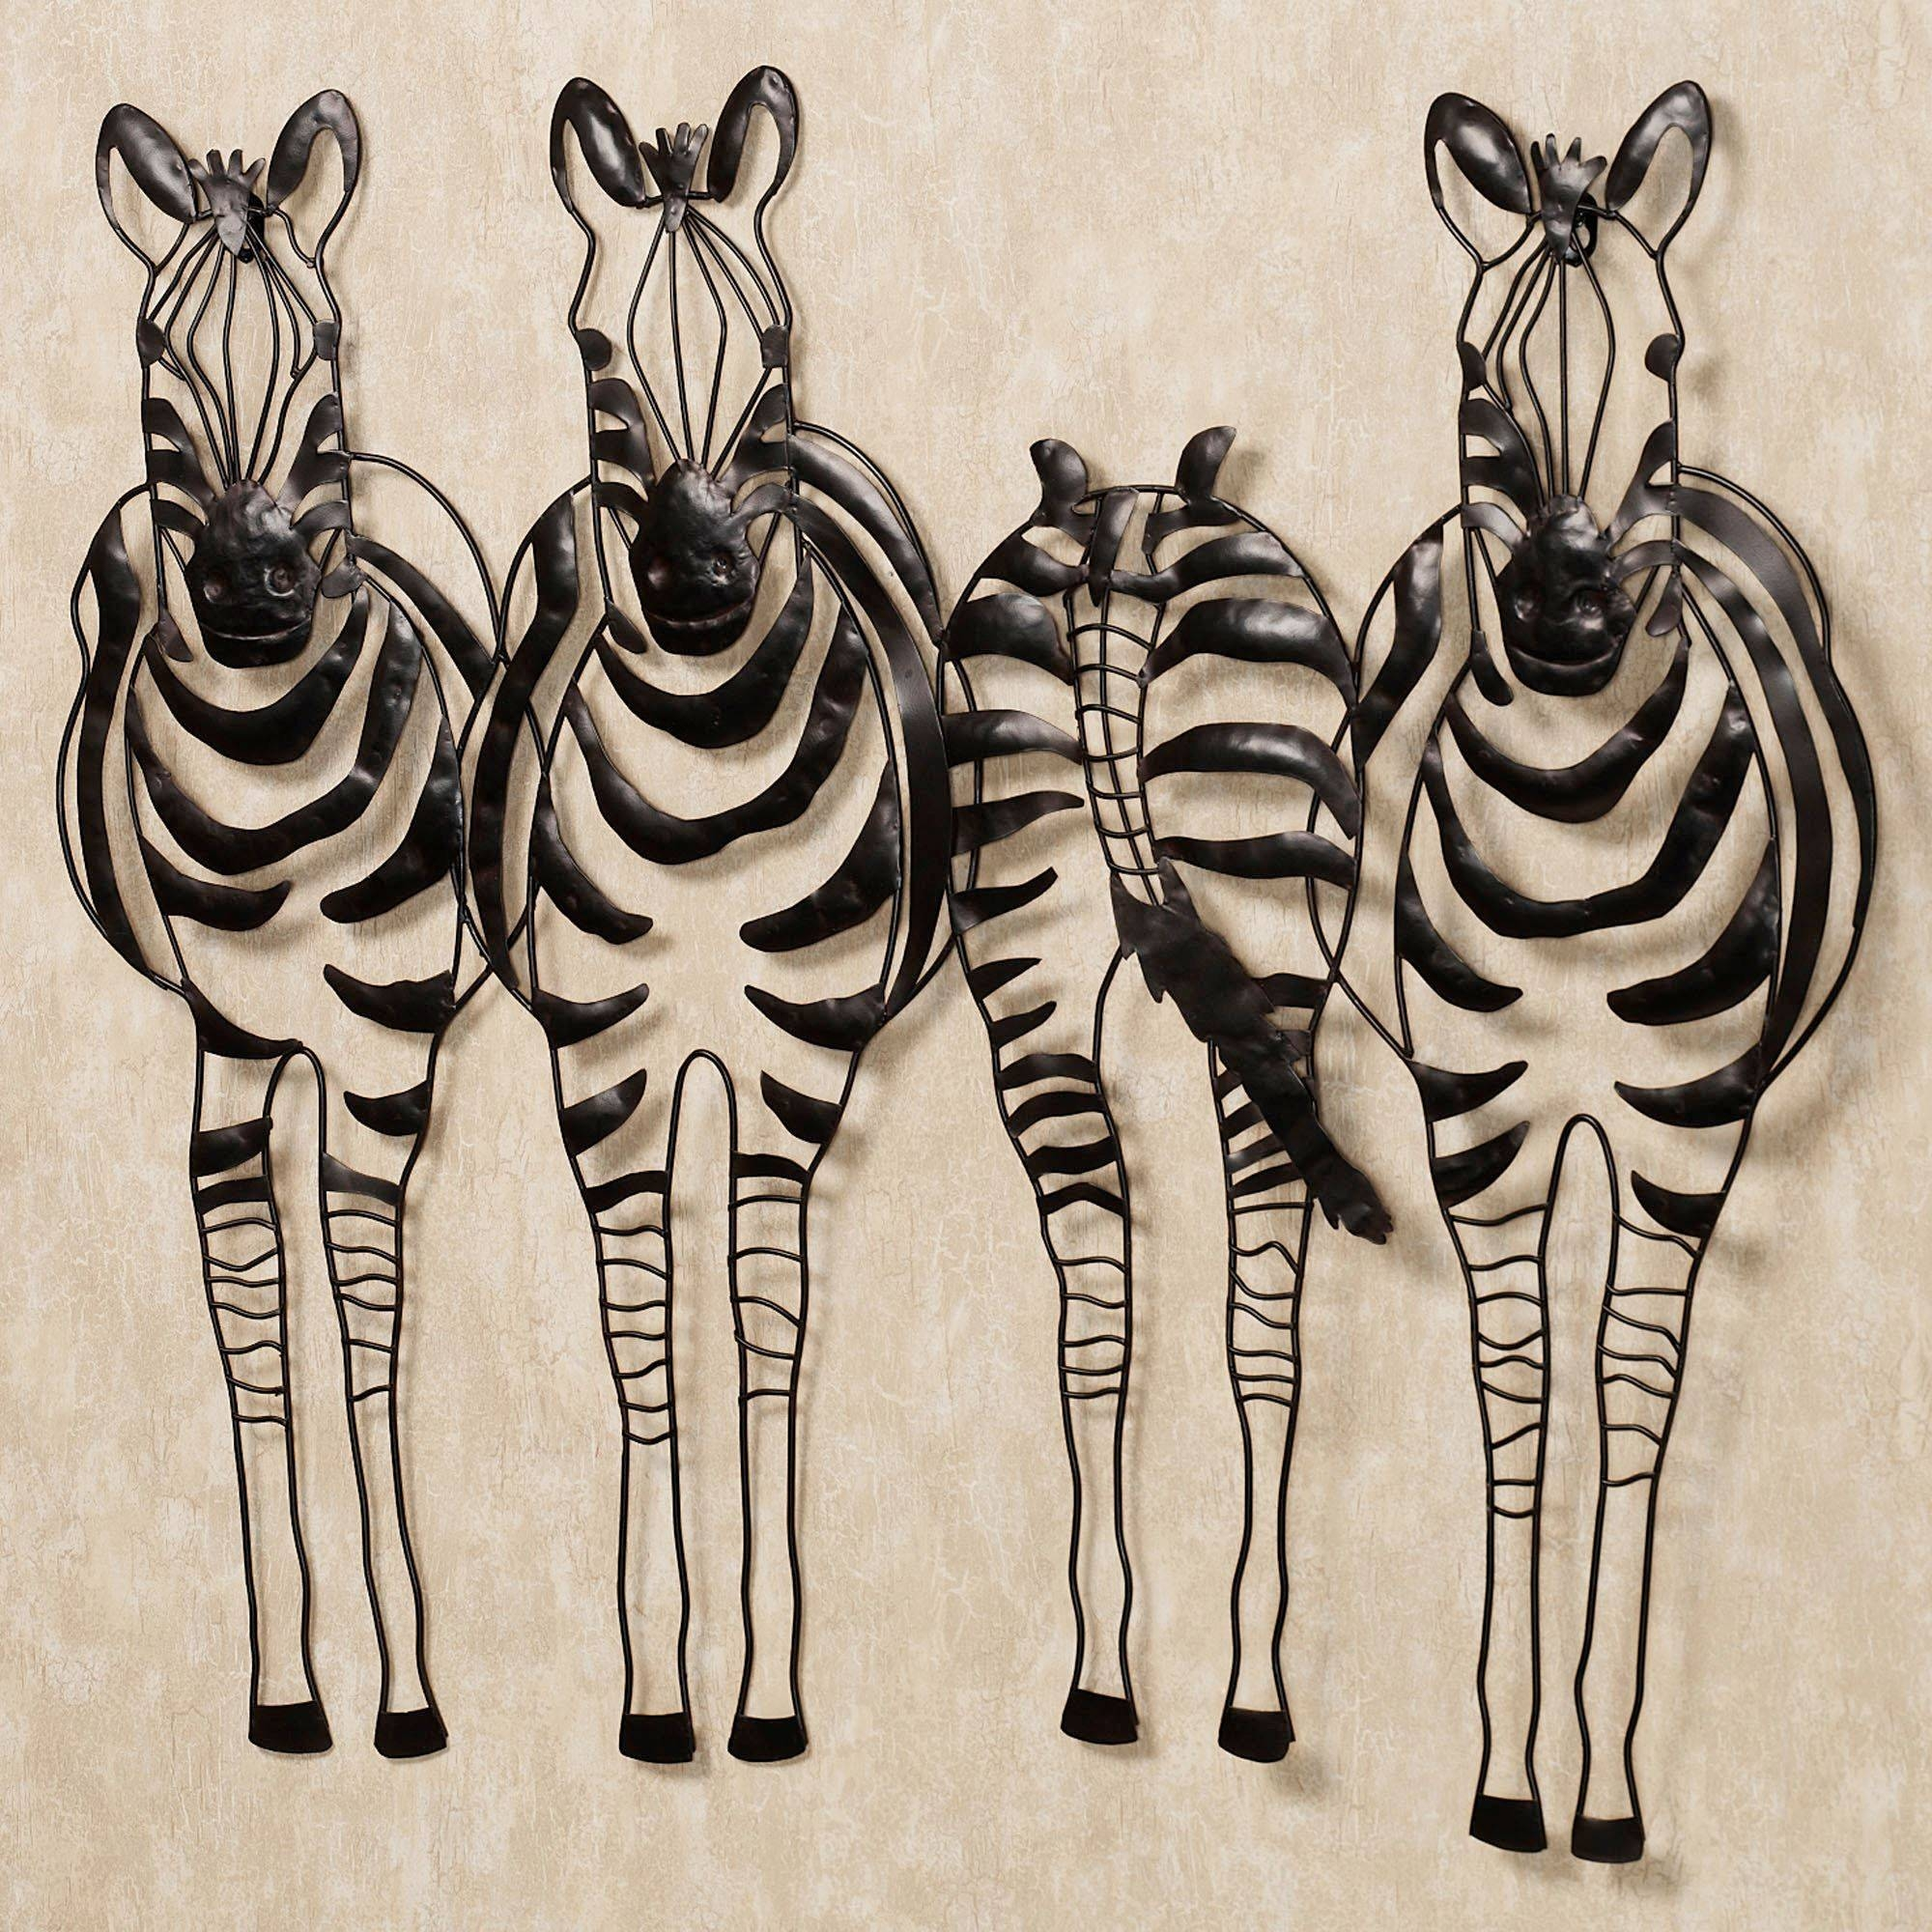 You Go Your Way Zebra Metal Wall Sculpture Art In Most Recently Released African Metal Wall Art (Gallery 2 of 30)